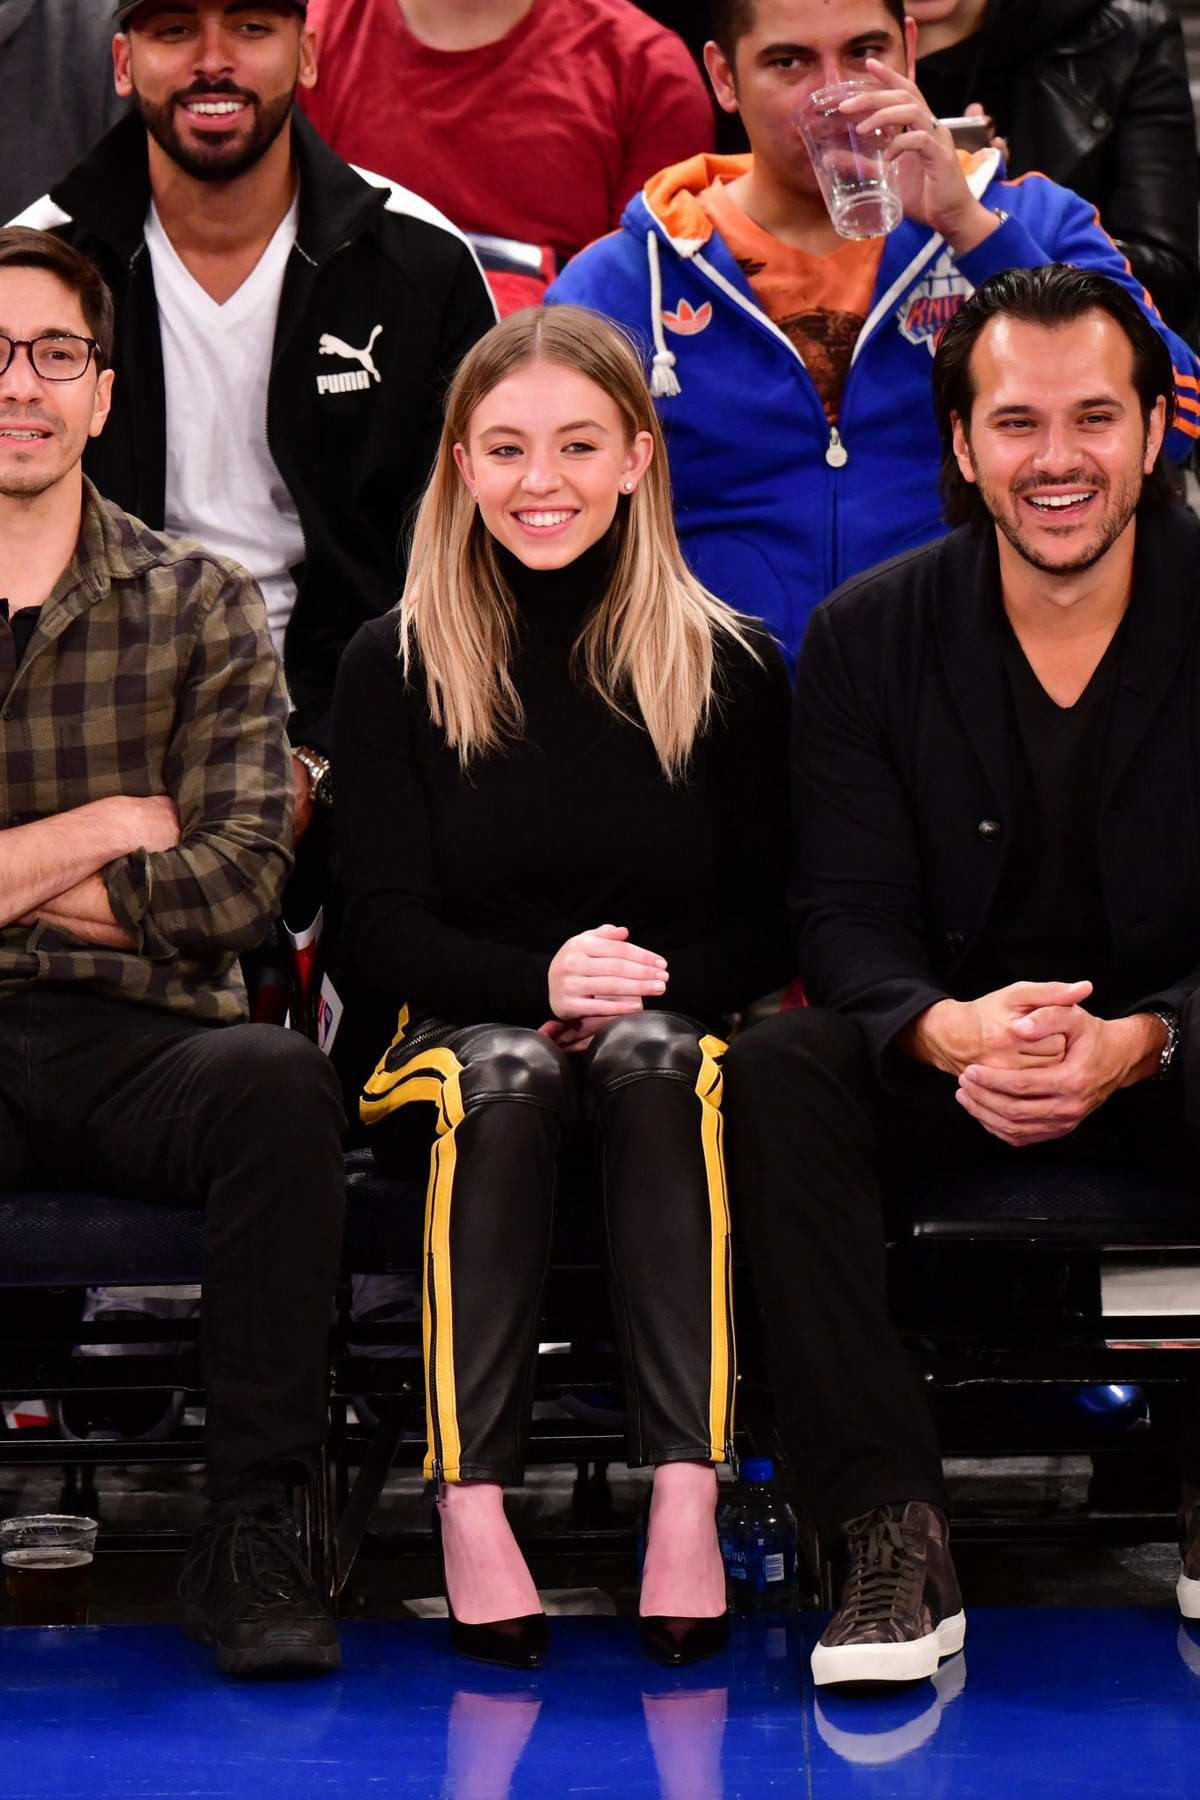 Sydney Sweeney attends New York Knicks v New Orleans Pelicans preseason game at Madison Square Garden in New York City